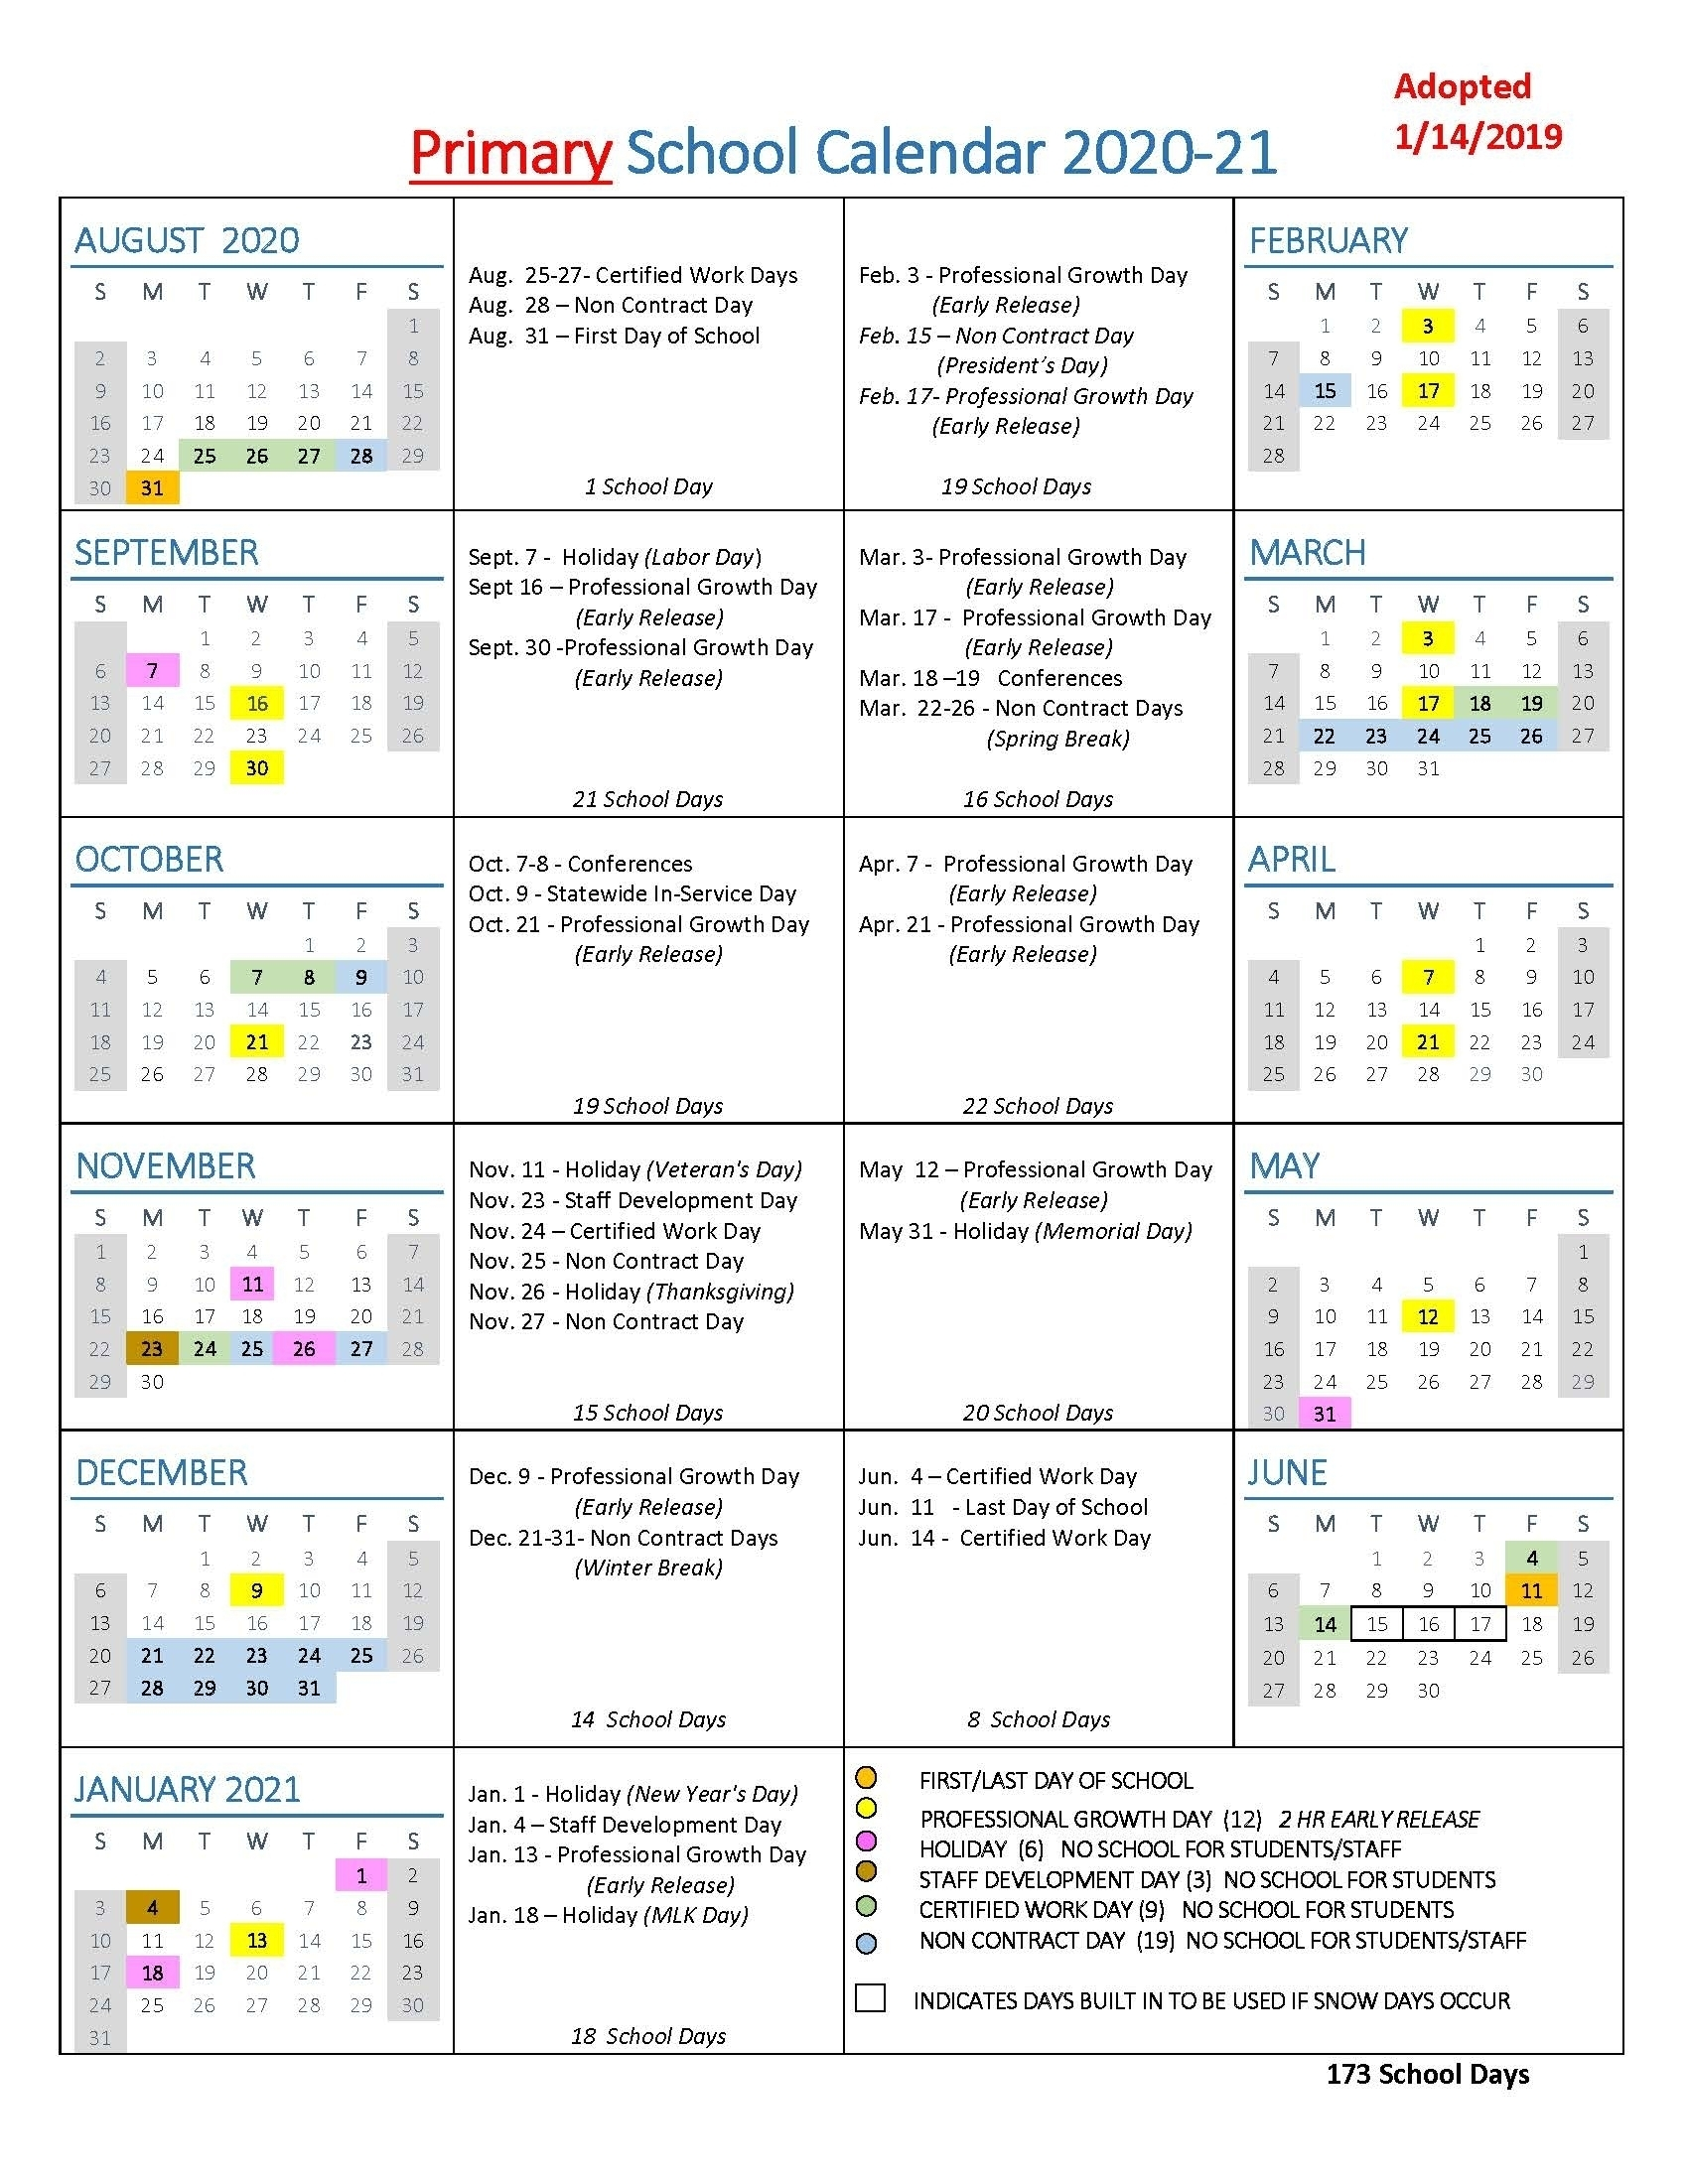 Calendar With All The Special Days In 2020 - Calendar pertaining to Year Of Special Days 2020